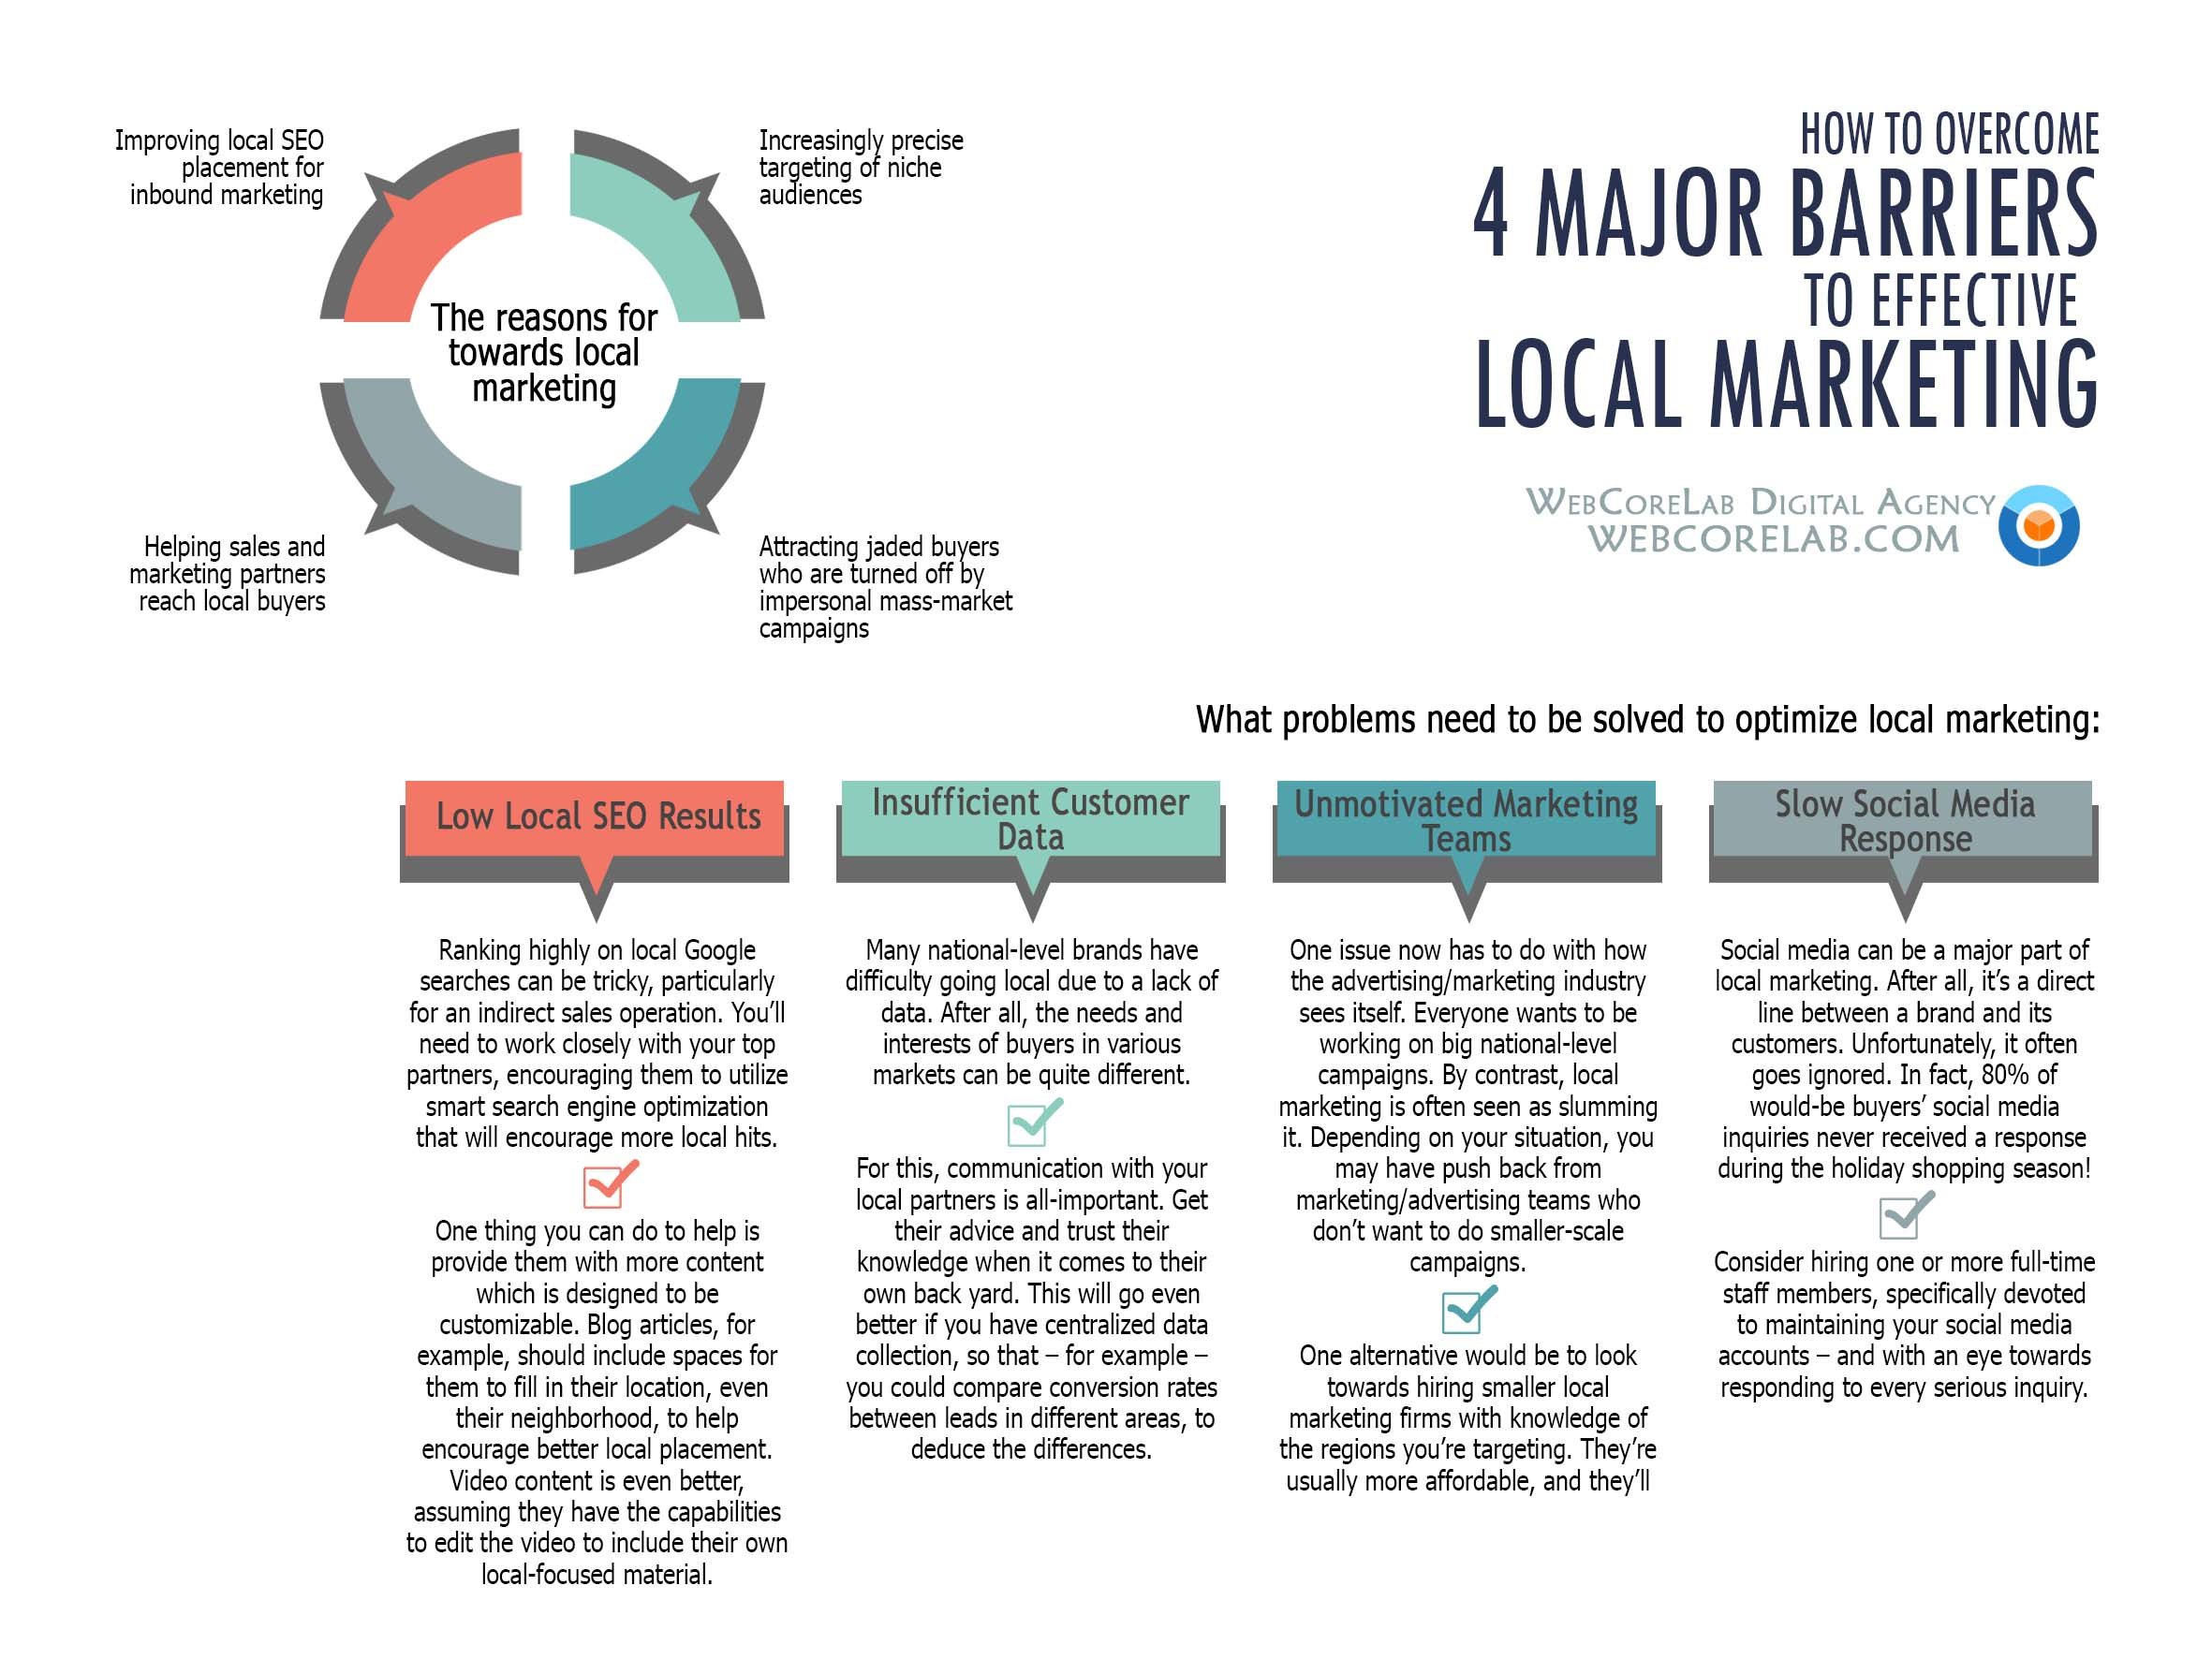 How to overcome barriers to effective local marketing